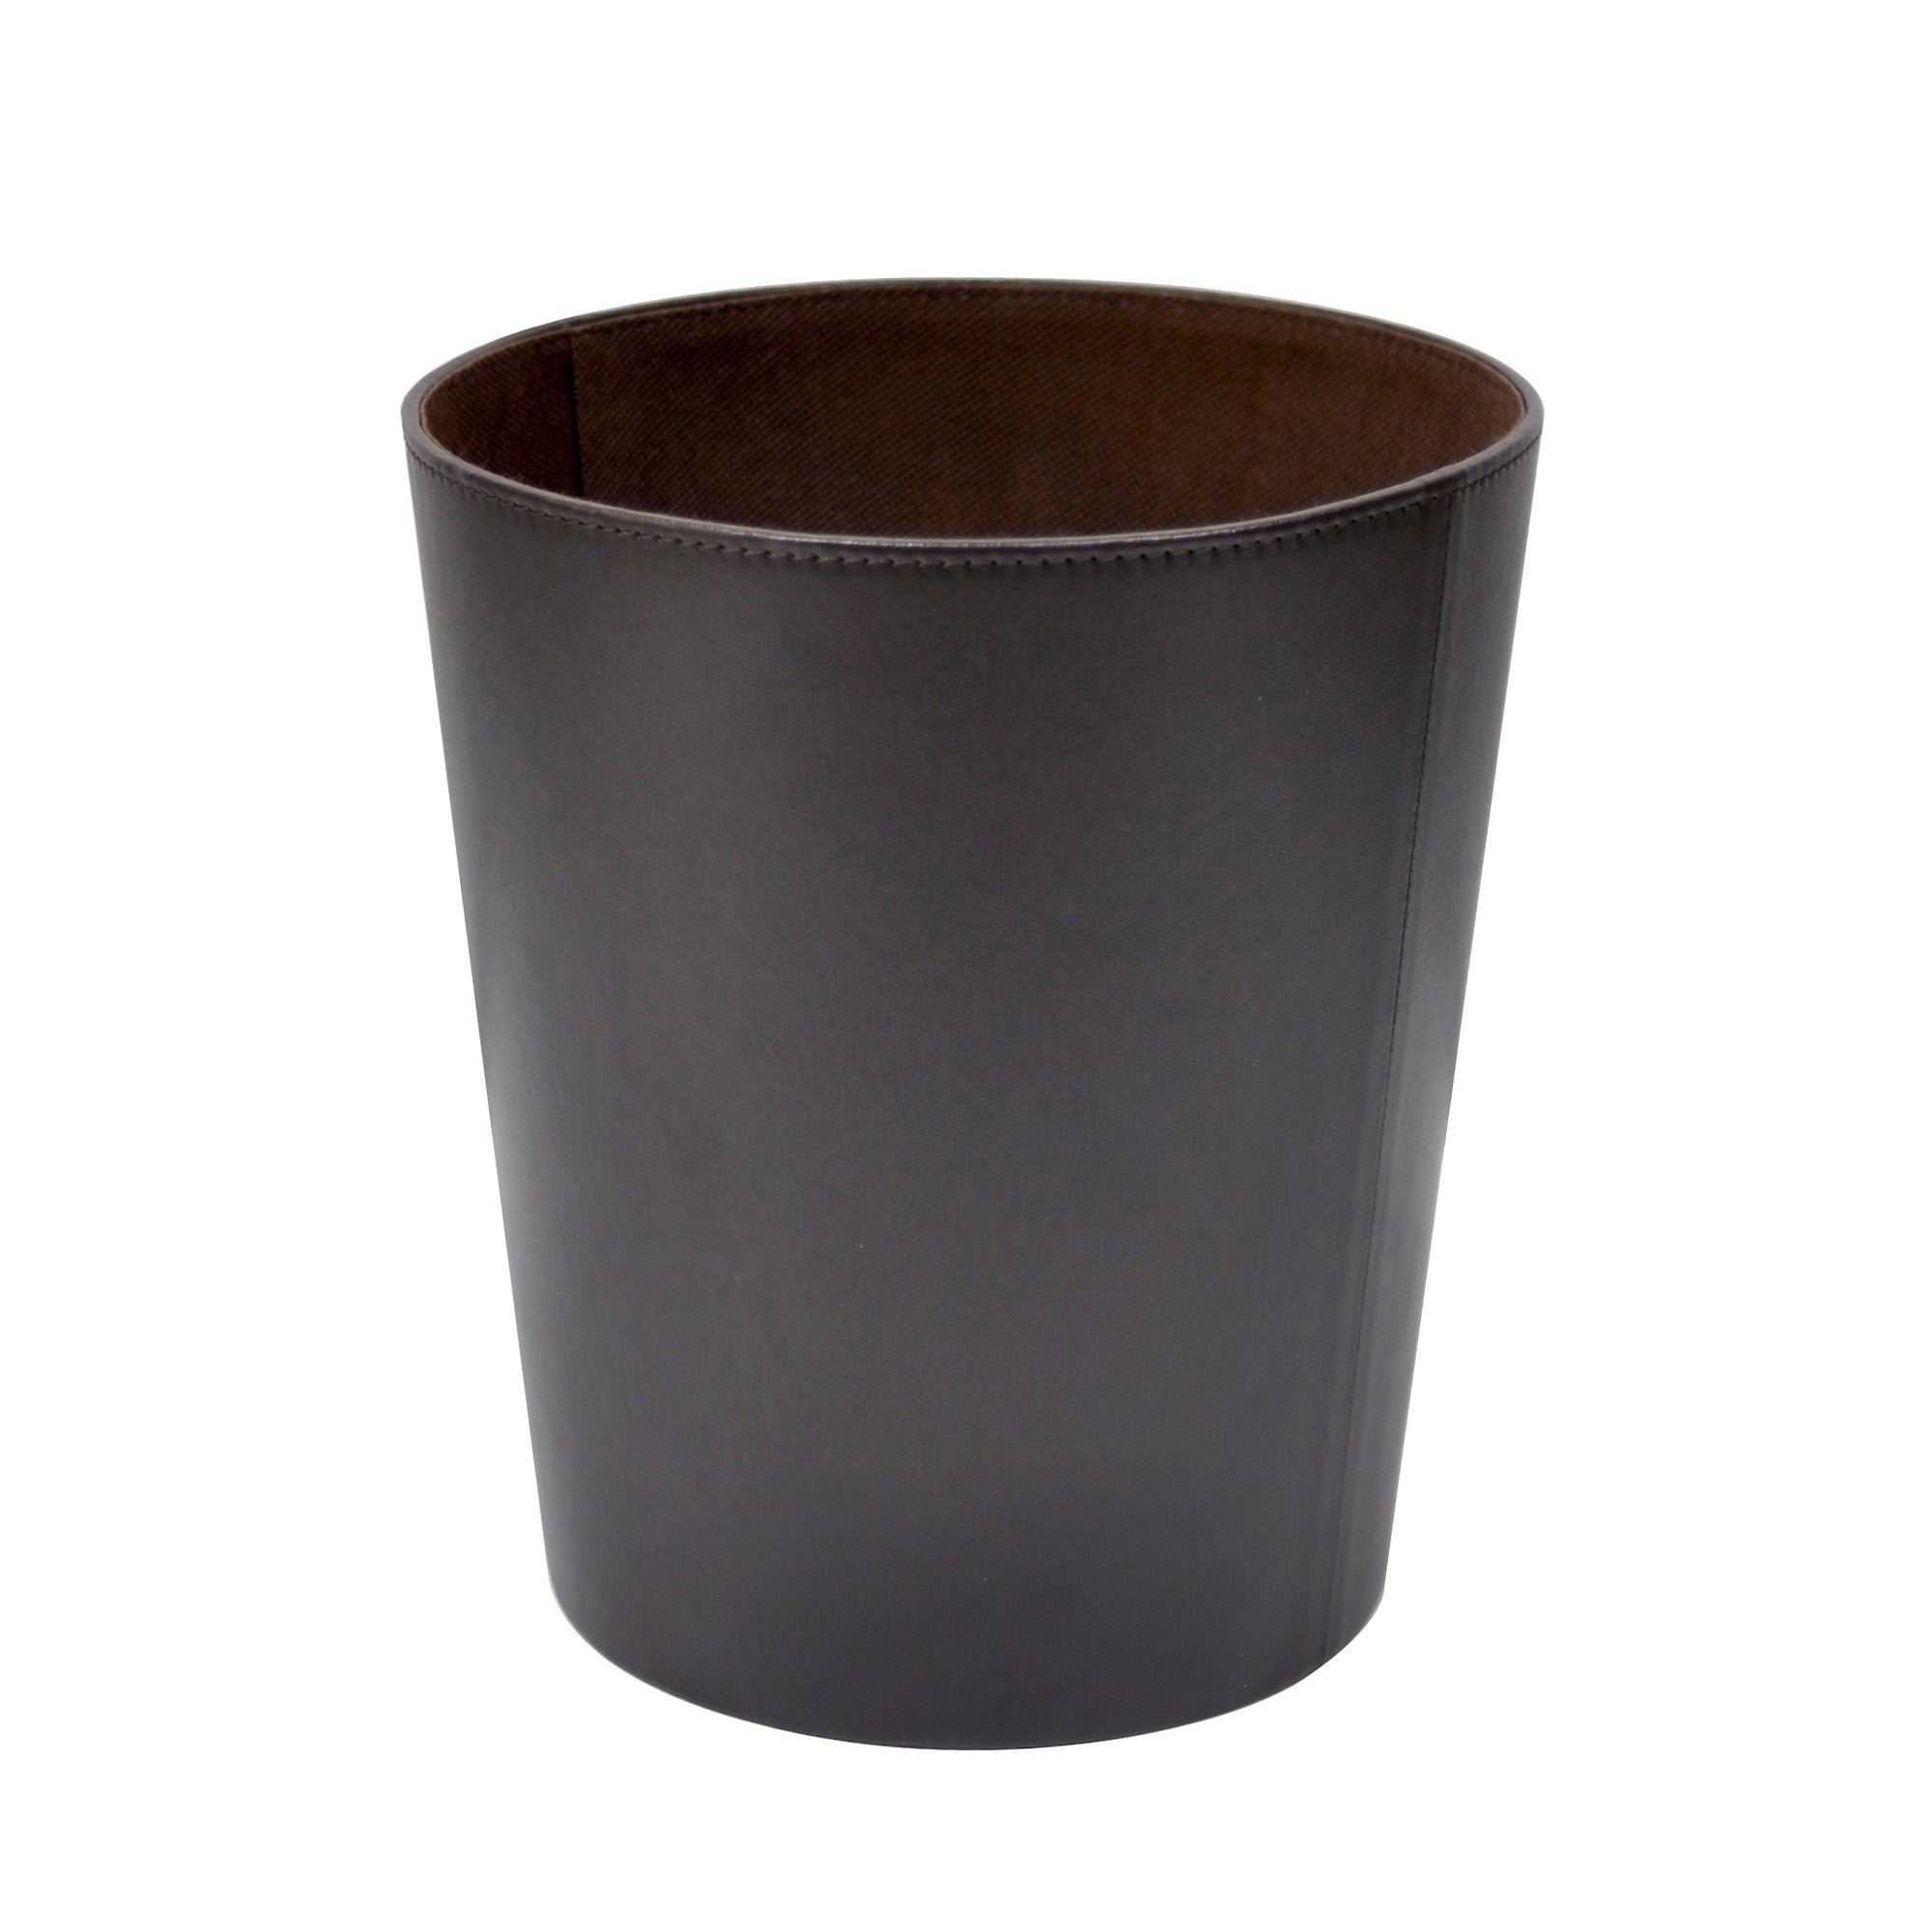 Brown Faux Leather Collection Waste Bin